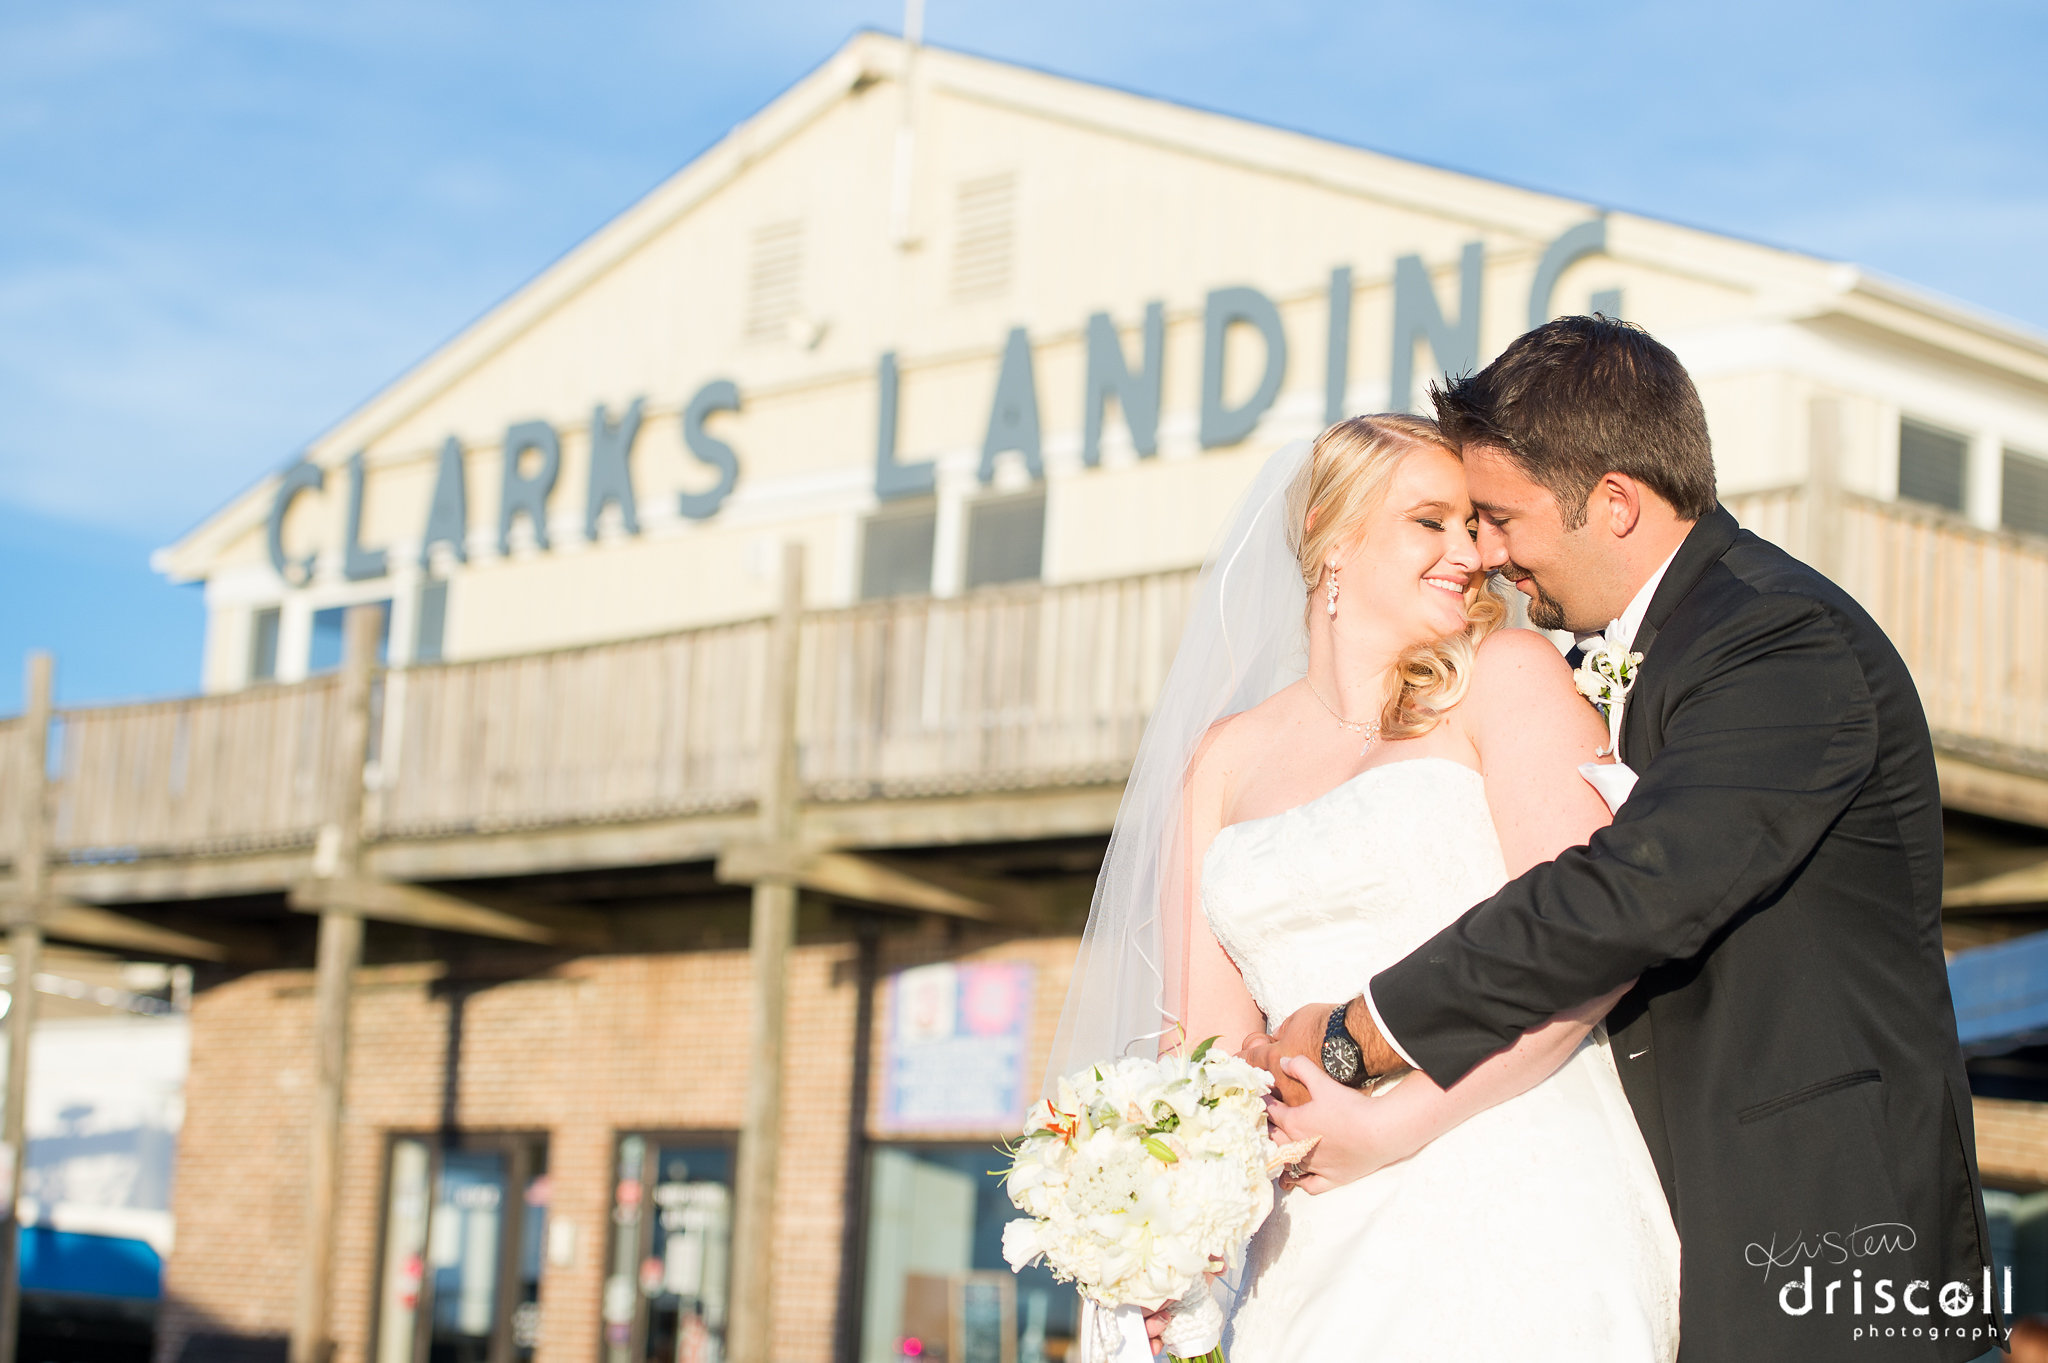 wedding photos at clarks landing point pleasant nj wedding-photographers kristen driscoll photography 20140829-5769